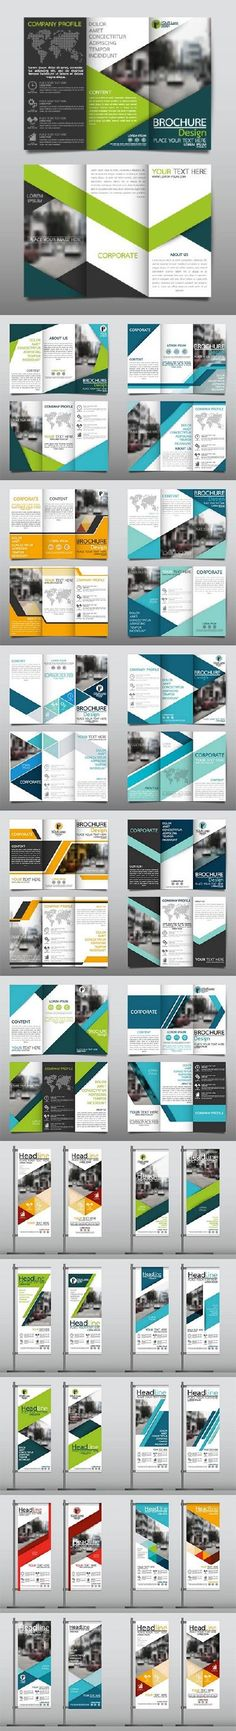 Roll up banner and tri fold brochure